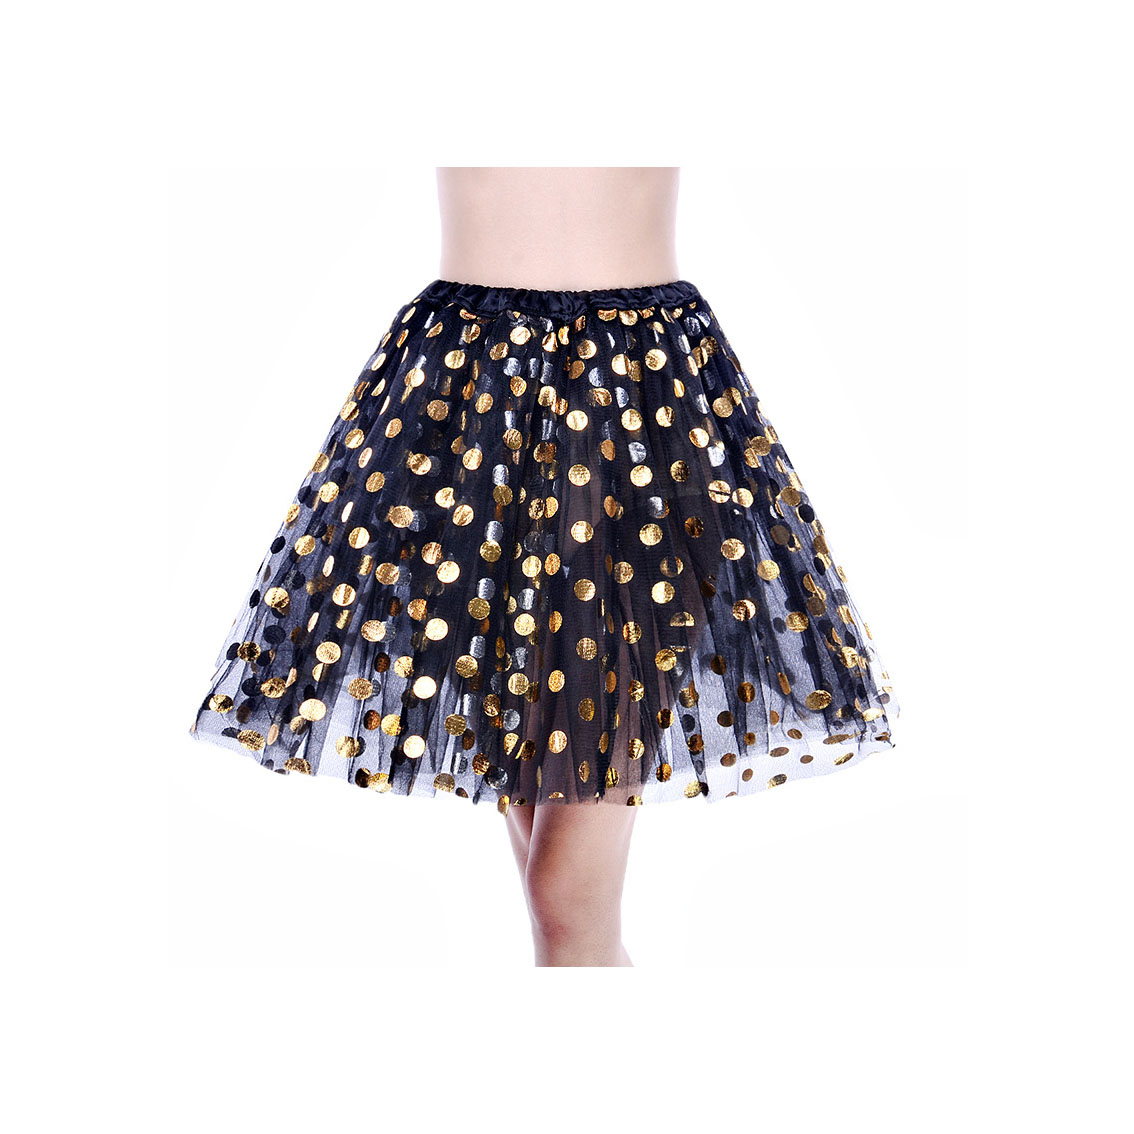 Adult Tutu Skirt Sequin Gilding Polka Dot 3 Layers Party Dance Ballet Pettiskirt Tulle Girl Mini Skirt black+gold